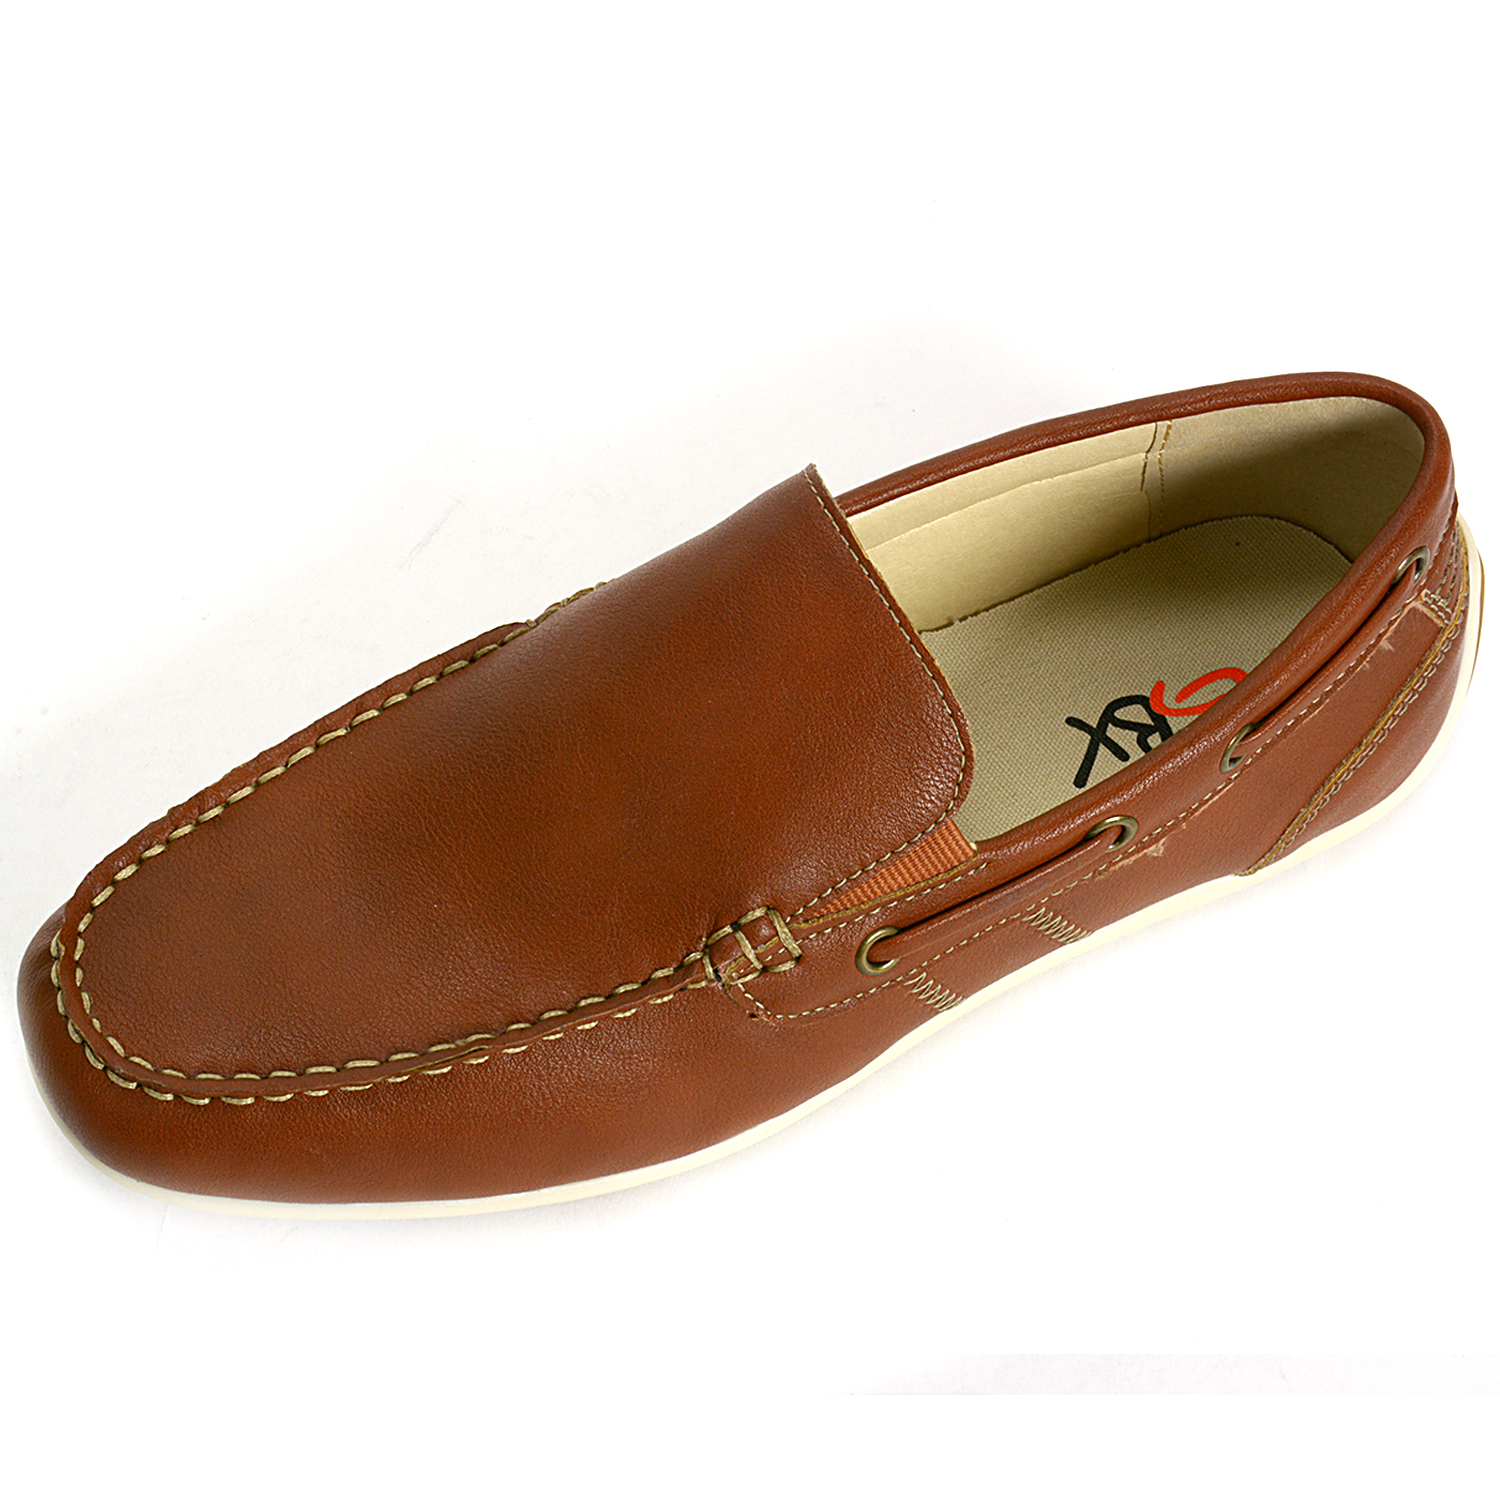 gbx mens casual loafers slip on toe boat shoes